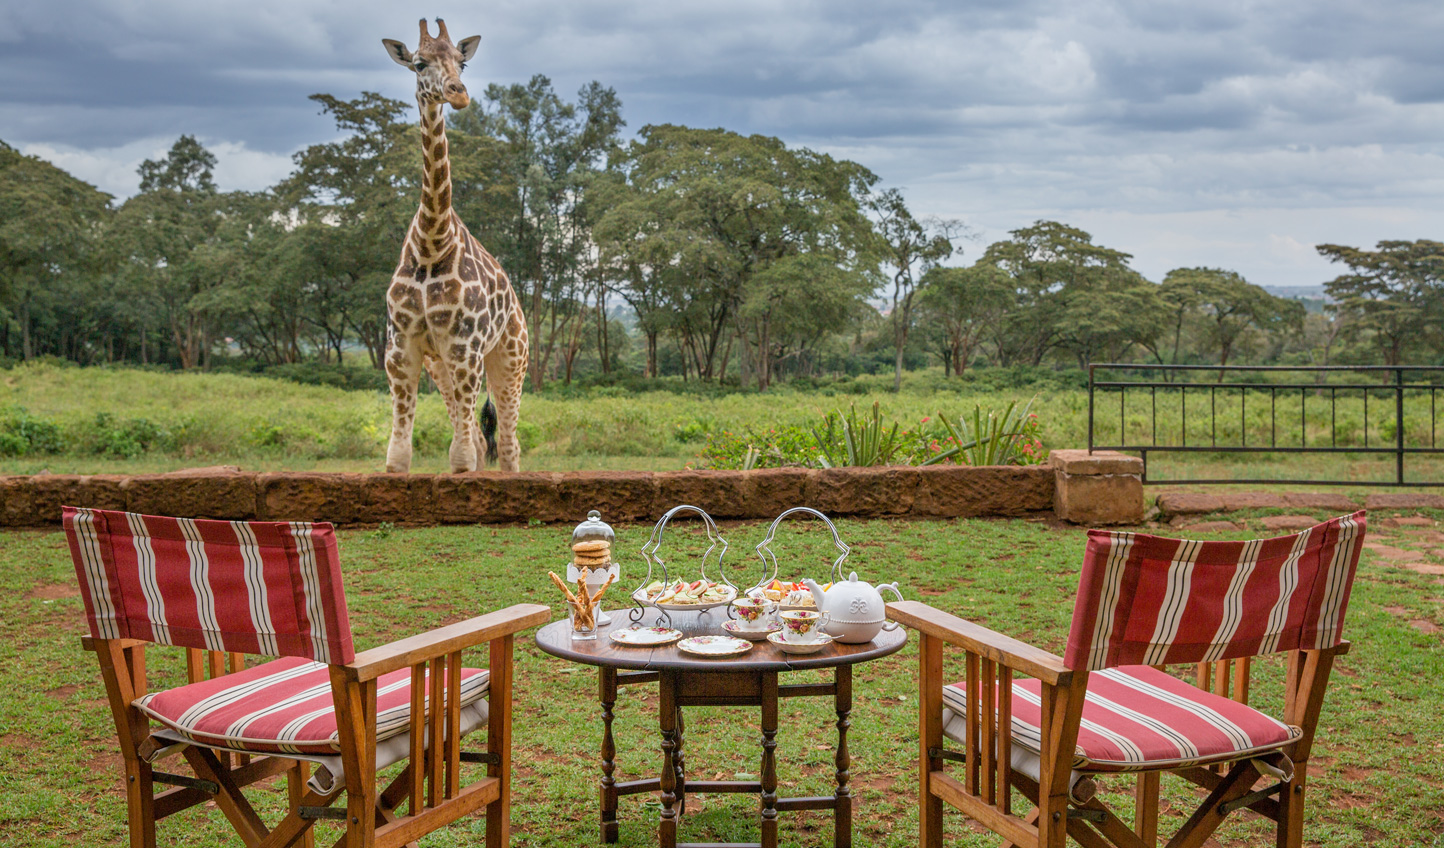 Share afternoon tea with some peckish neighbours